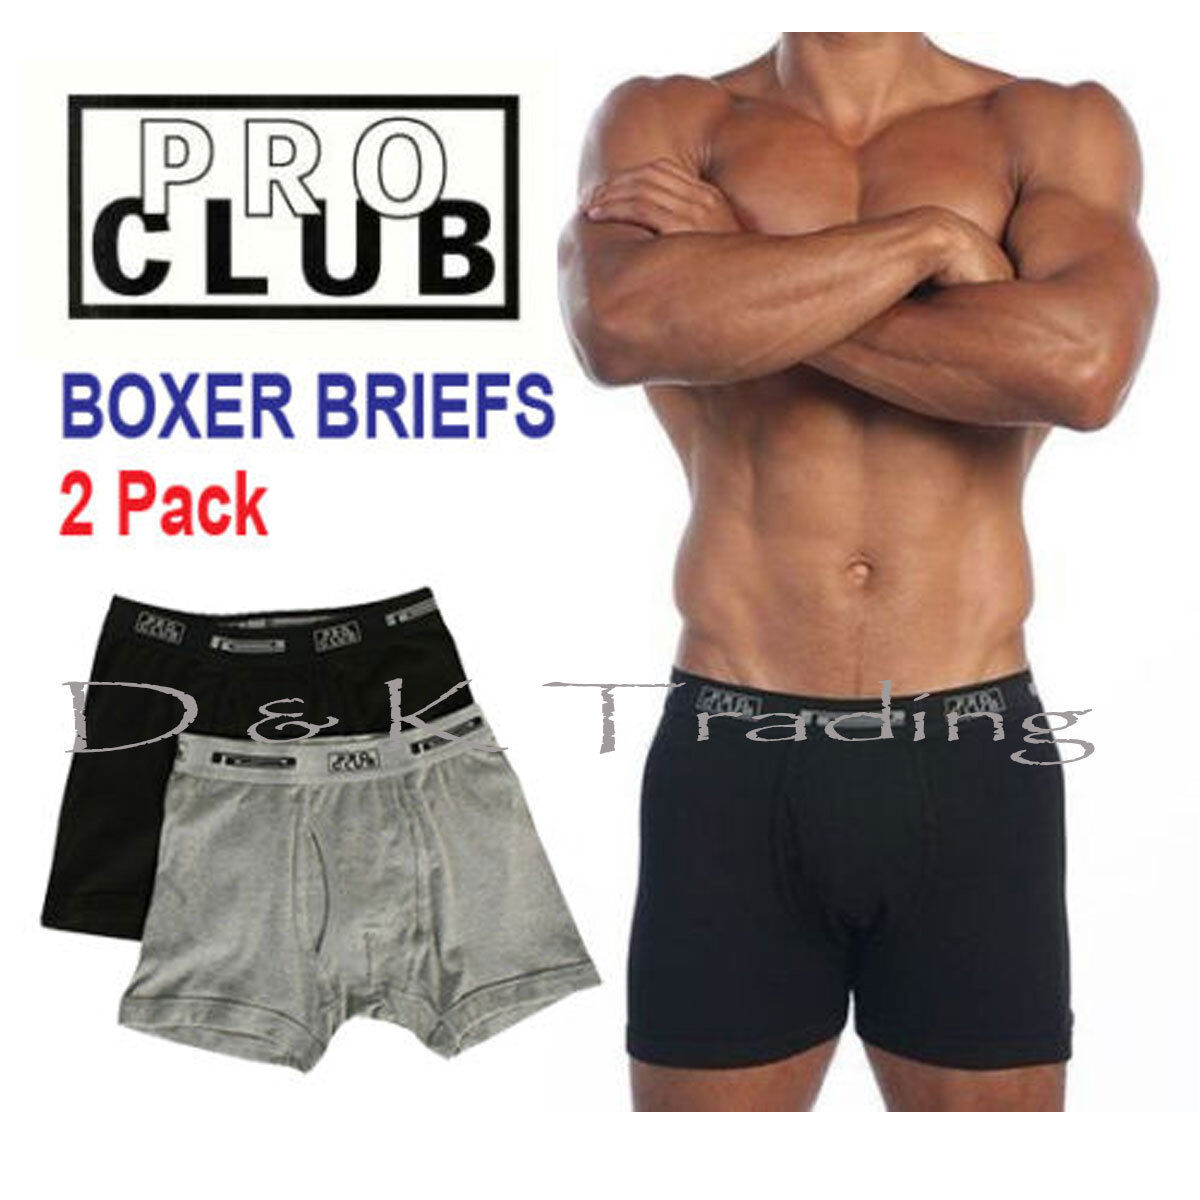 2 Pack PRO CLUB Boxer Briefs Cotton Proclub Men's Underwear